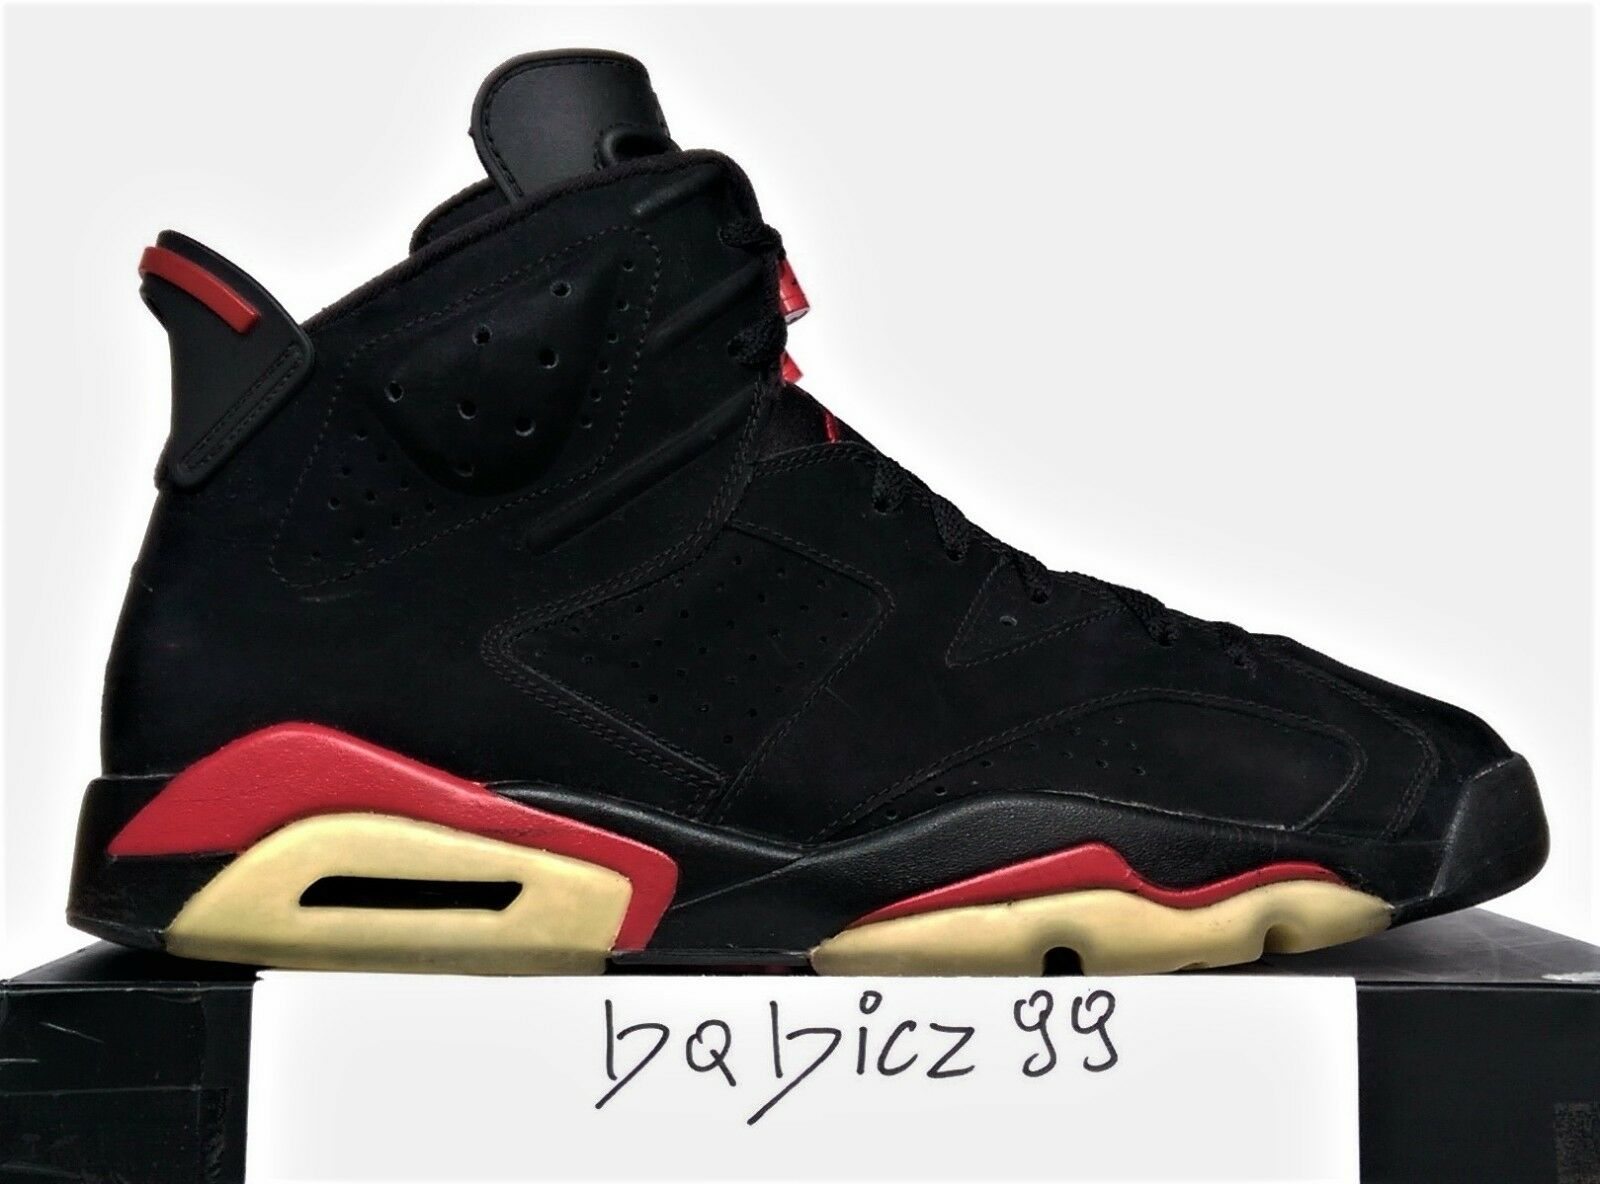 Air Air Air Jordan 6 IV Varsity Red 2009 13us/47.5eur 371ba1